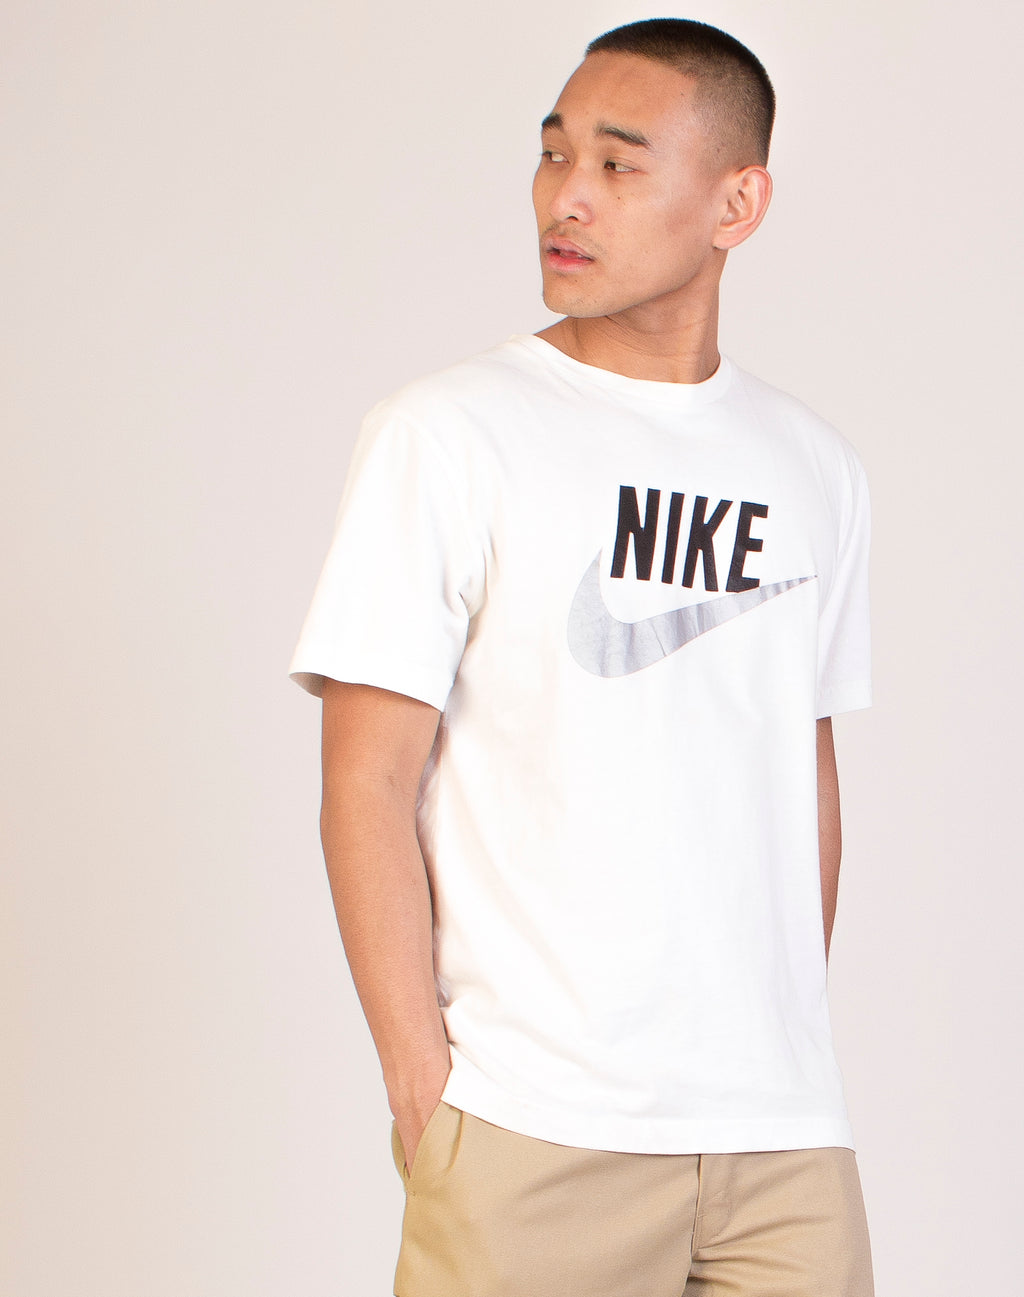 NIKE WHITE REFLECTIVE T-SHIRT